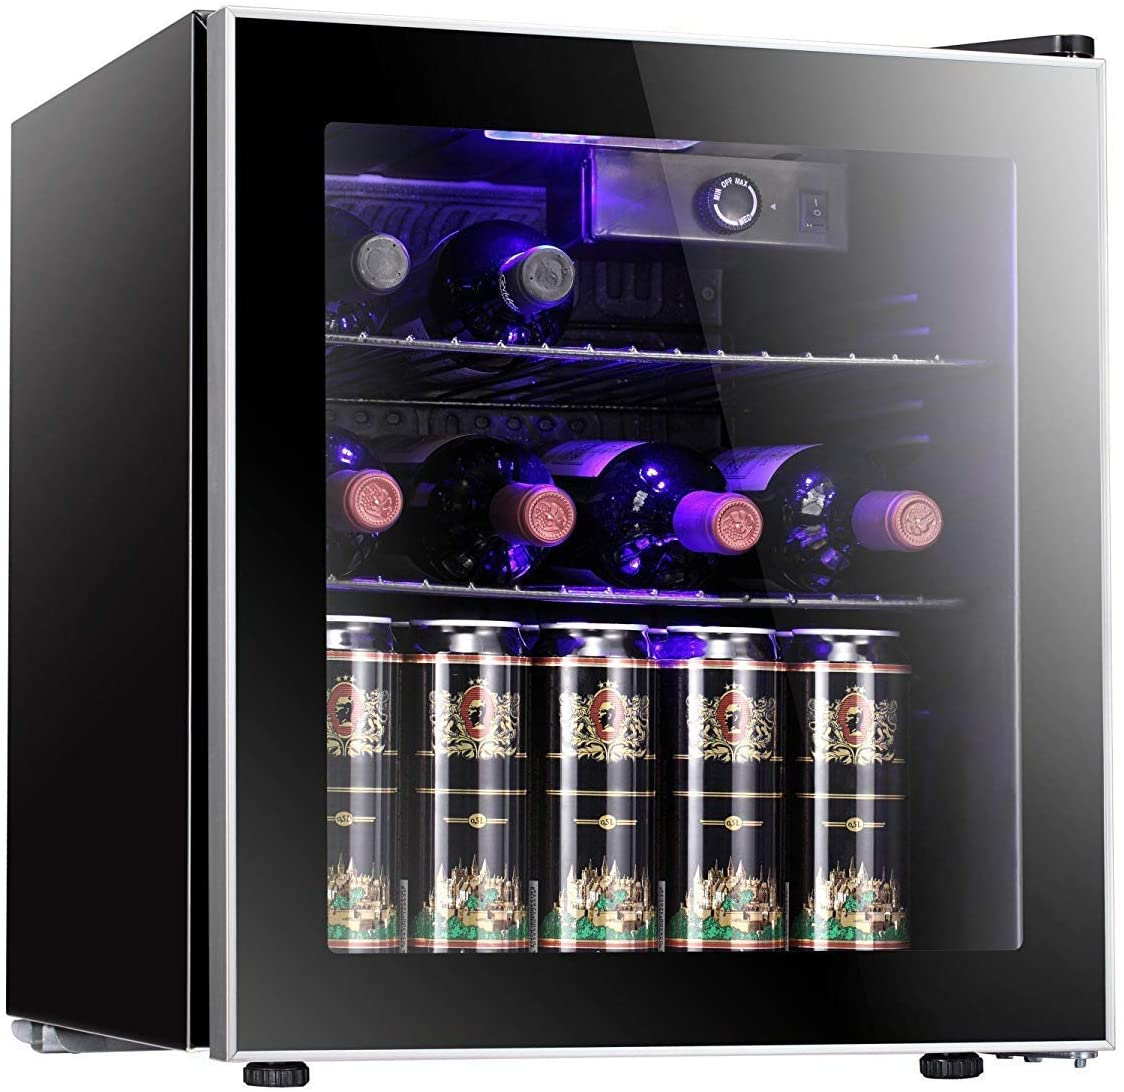 Antarctic Star Mini Wine & Beverage Countertop Cooler